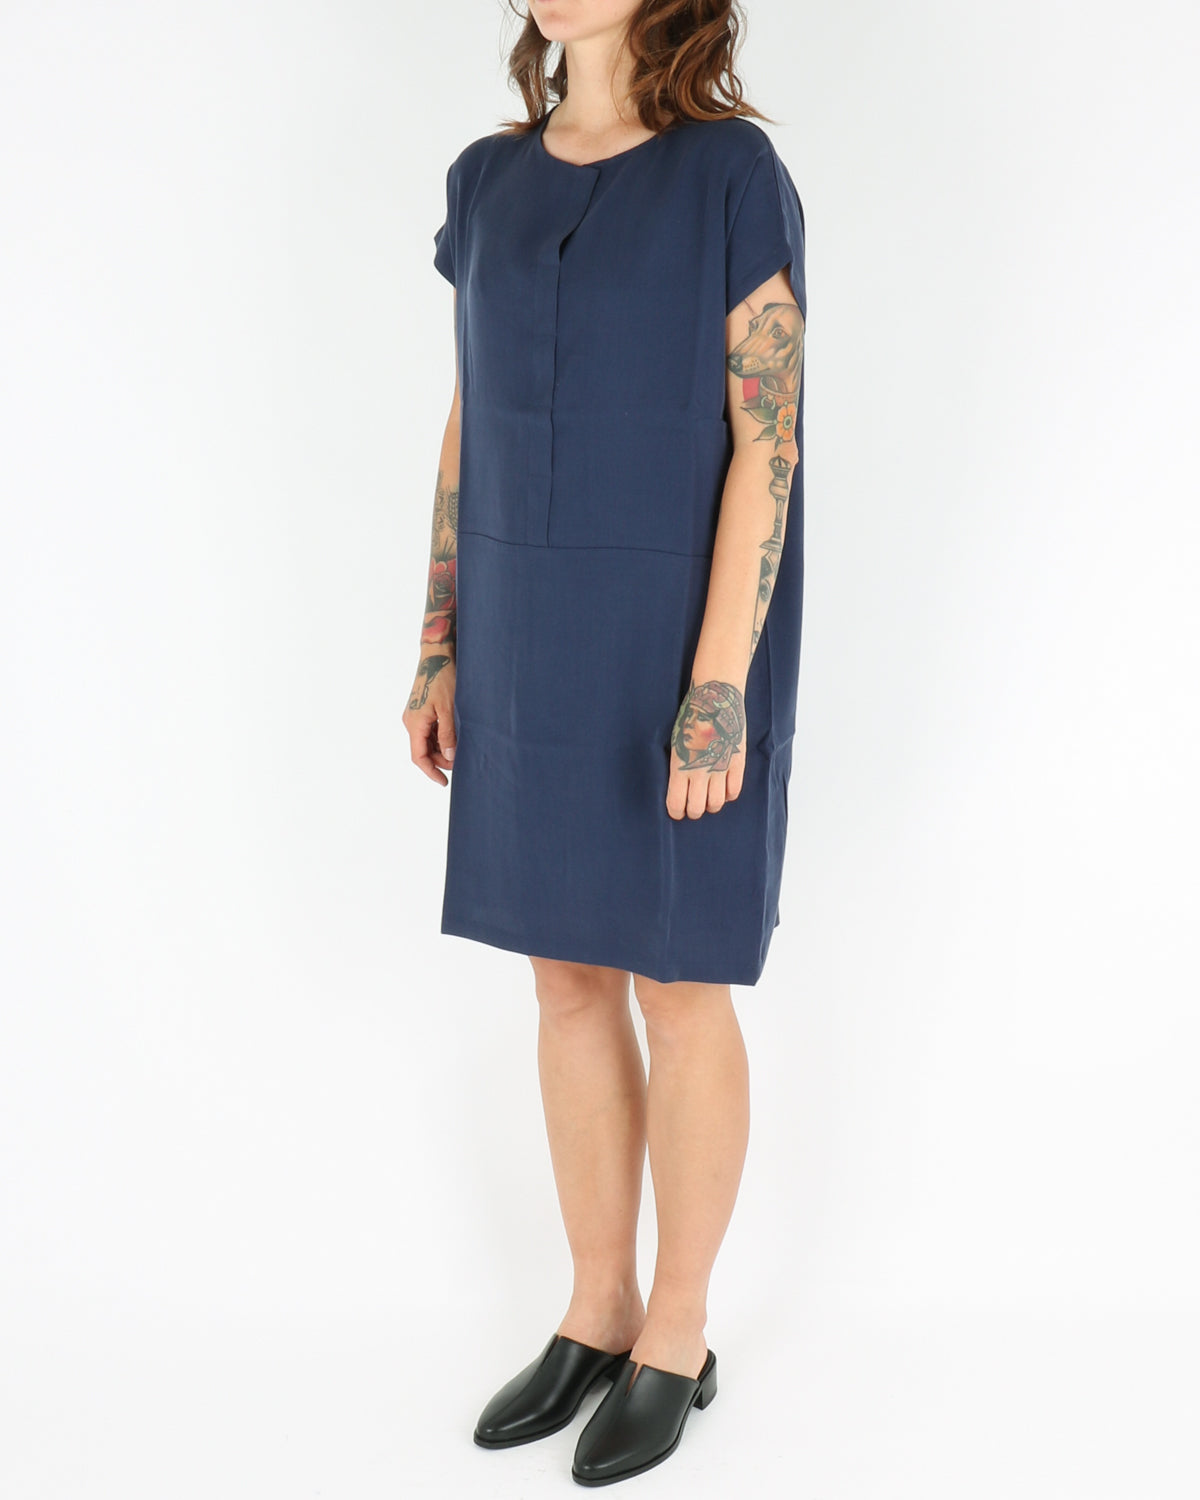 basic apparel_ines dress_navy_2_4